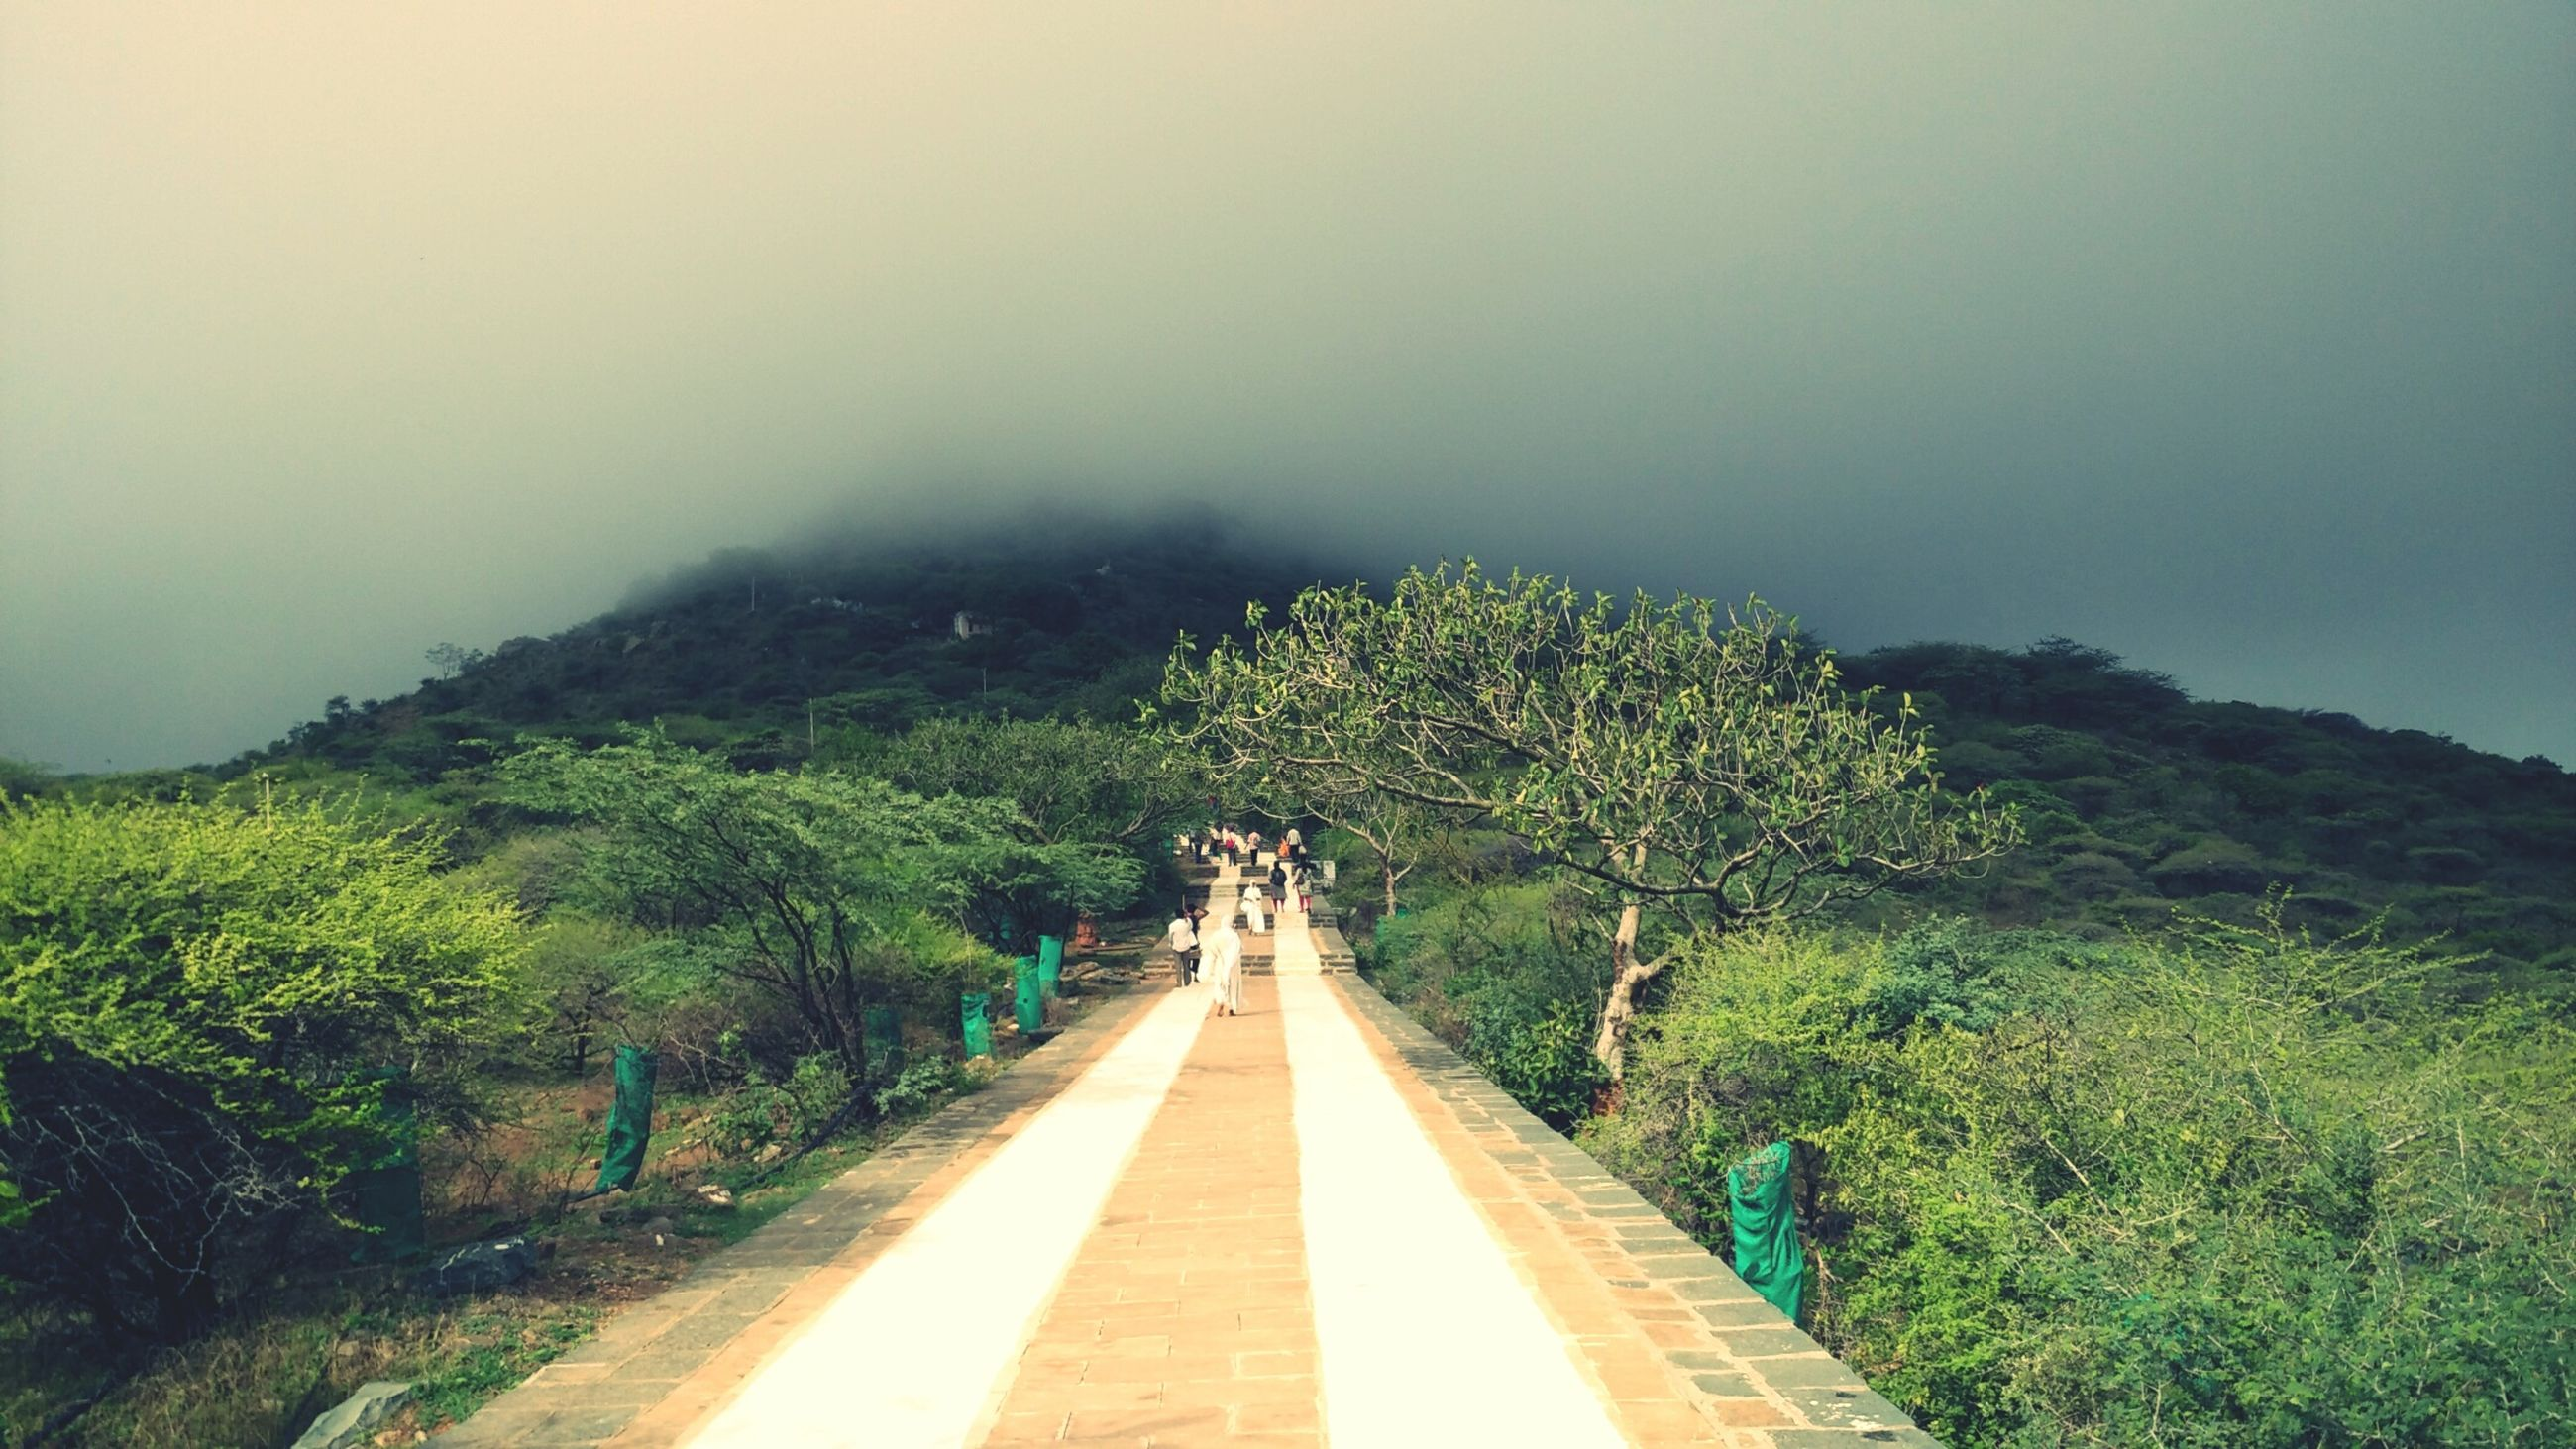 the way forward, diminishing perspective, tree, tranquility, vanishing point, tranquil scene, road, mountain, nature, green color, scenics, beauty in nature, transportation, sky, growth, non-urban scene, landscape, lush foliage, no people, outdoors